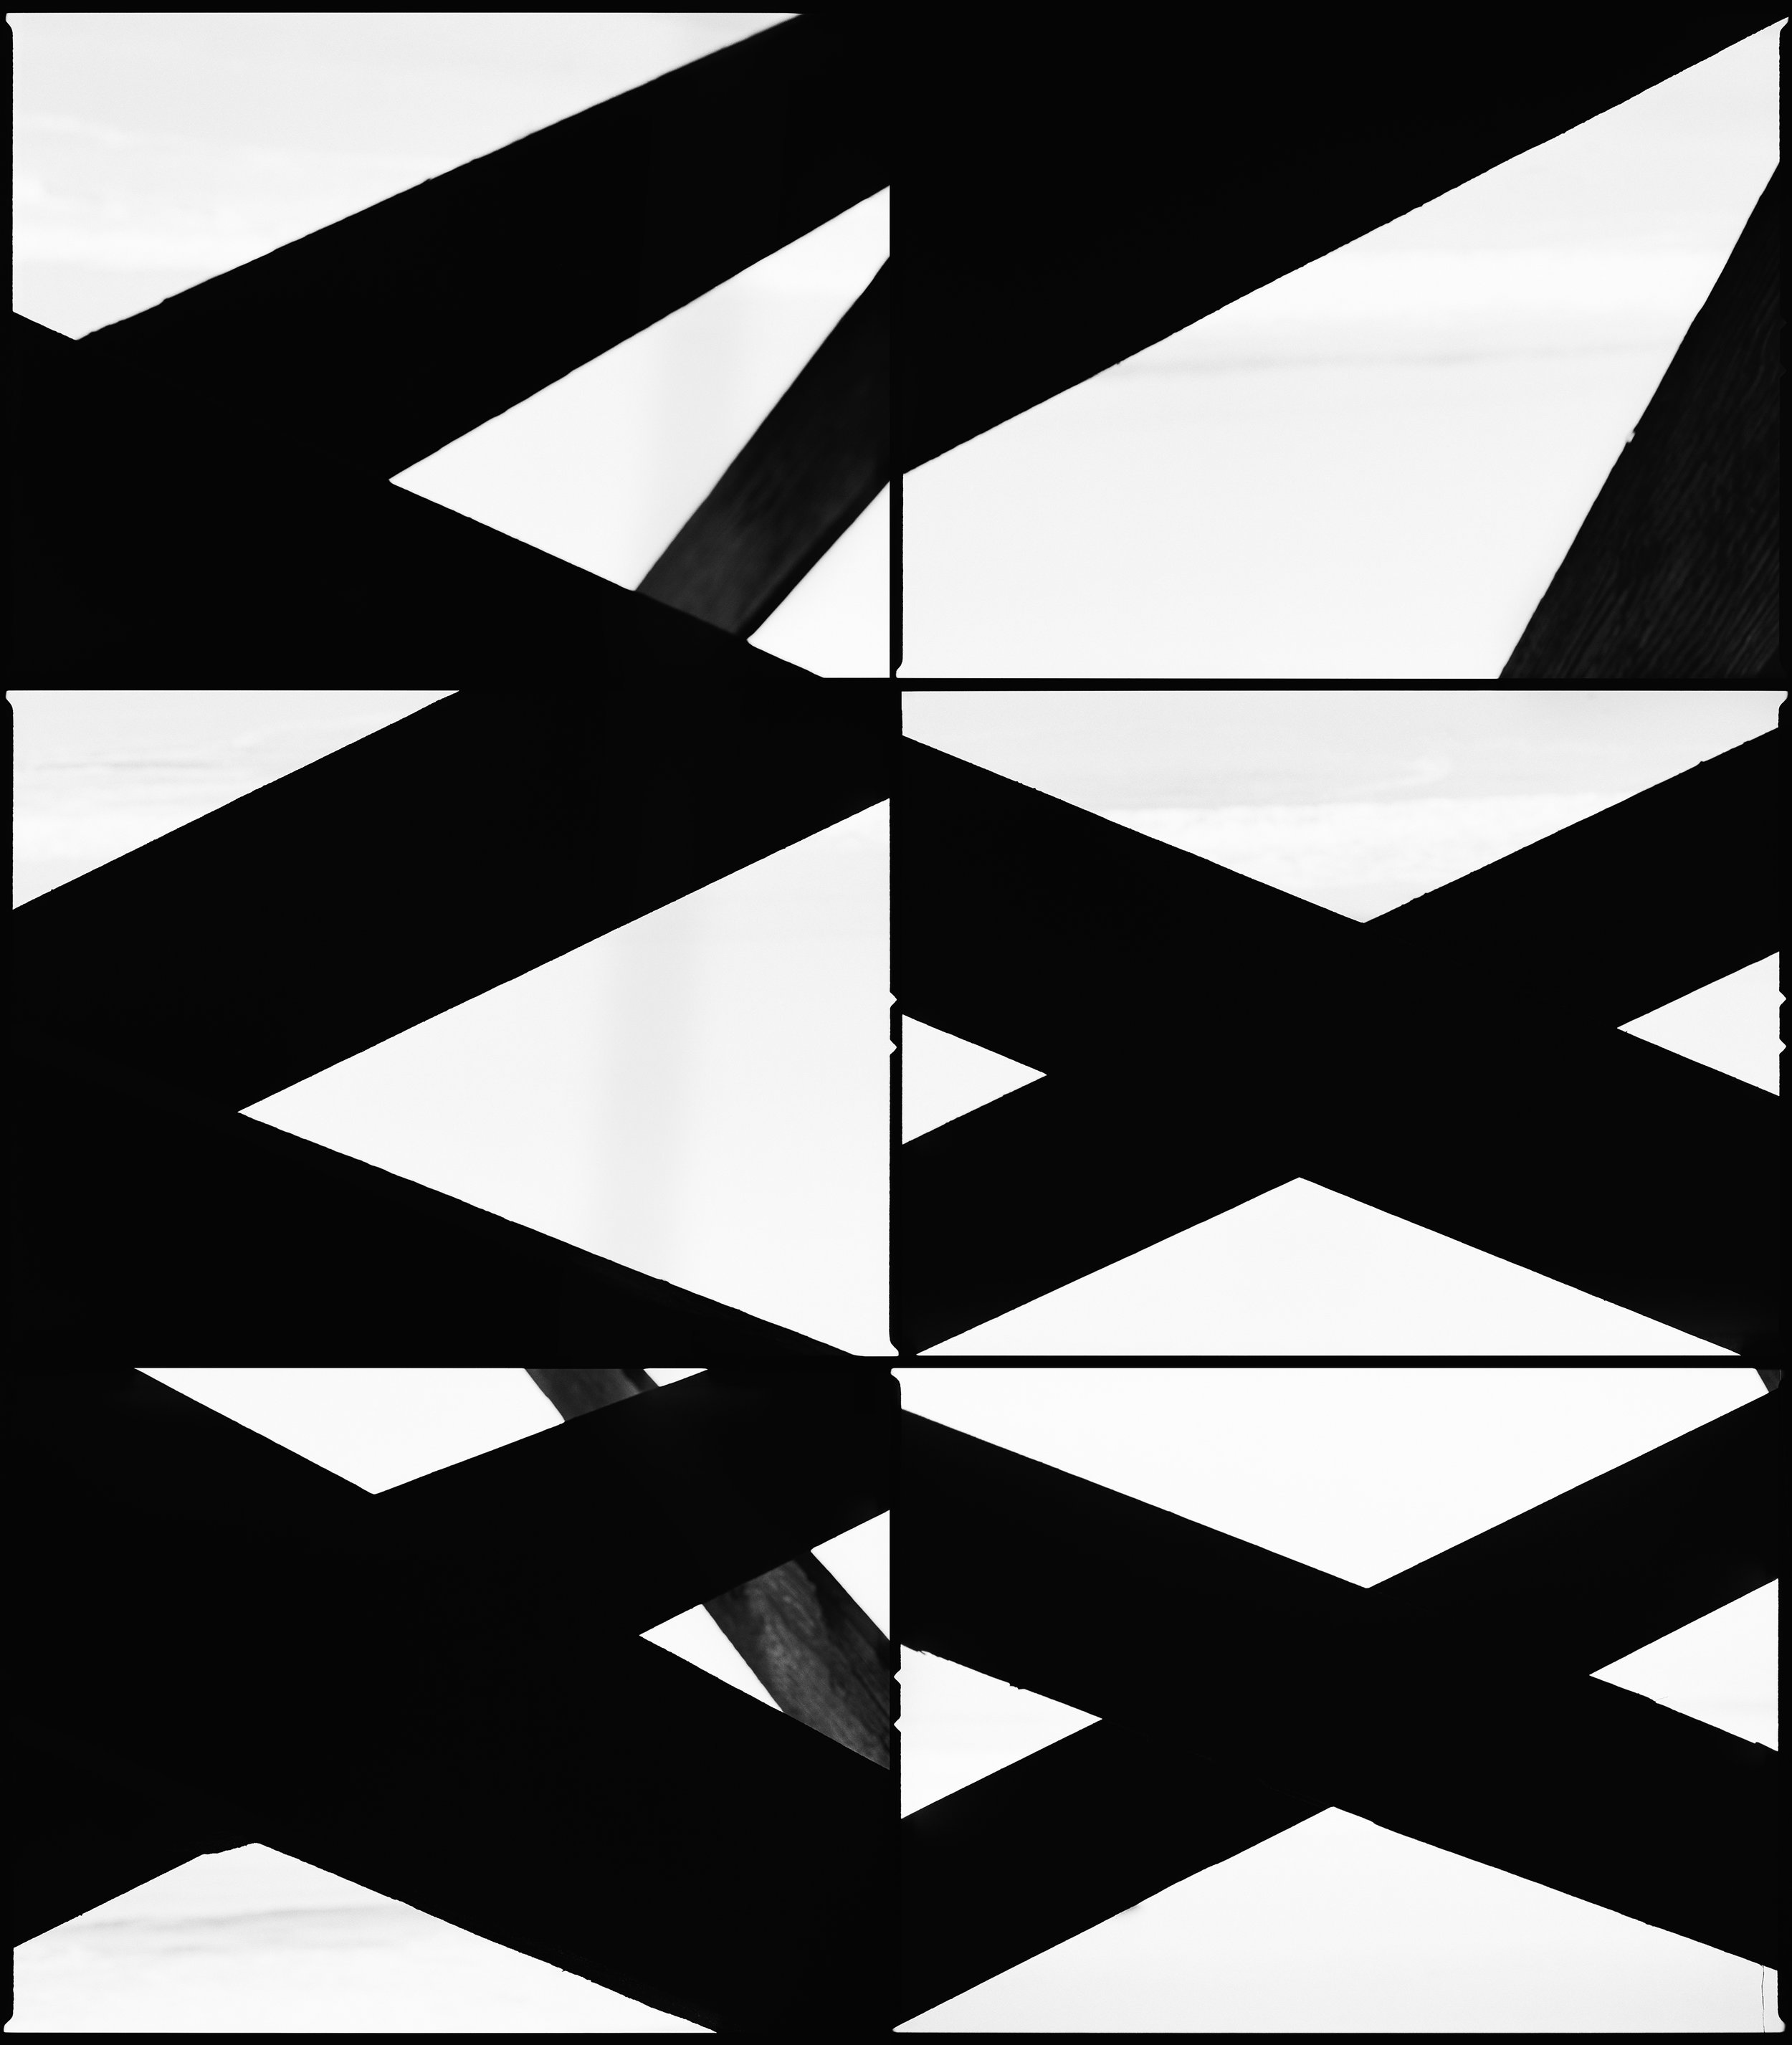 Untitled #27   (Nowhere)  , 2012/ archival pigment   print, 48  x 41 1/16 inches  ,  edition of 3 plus 2 AP